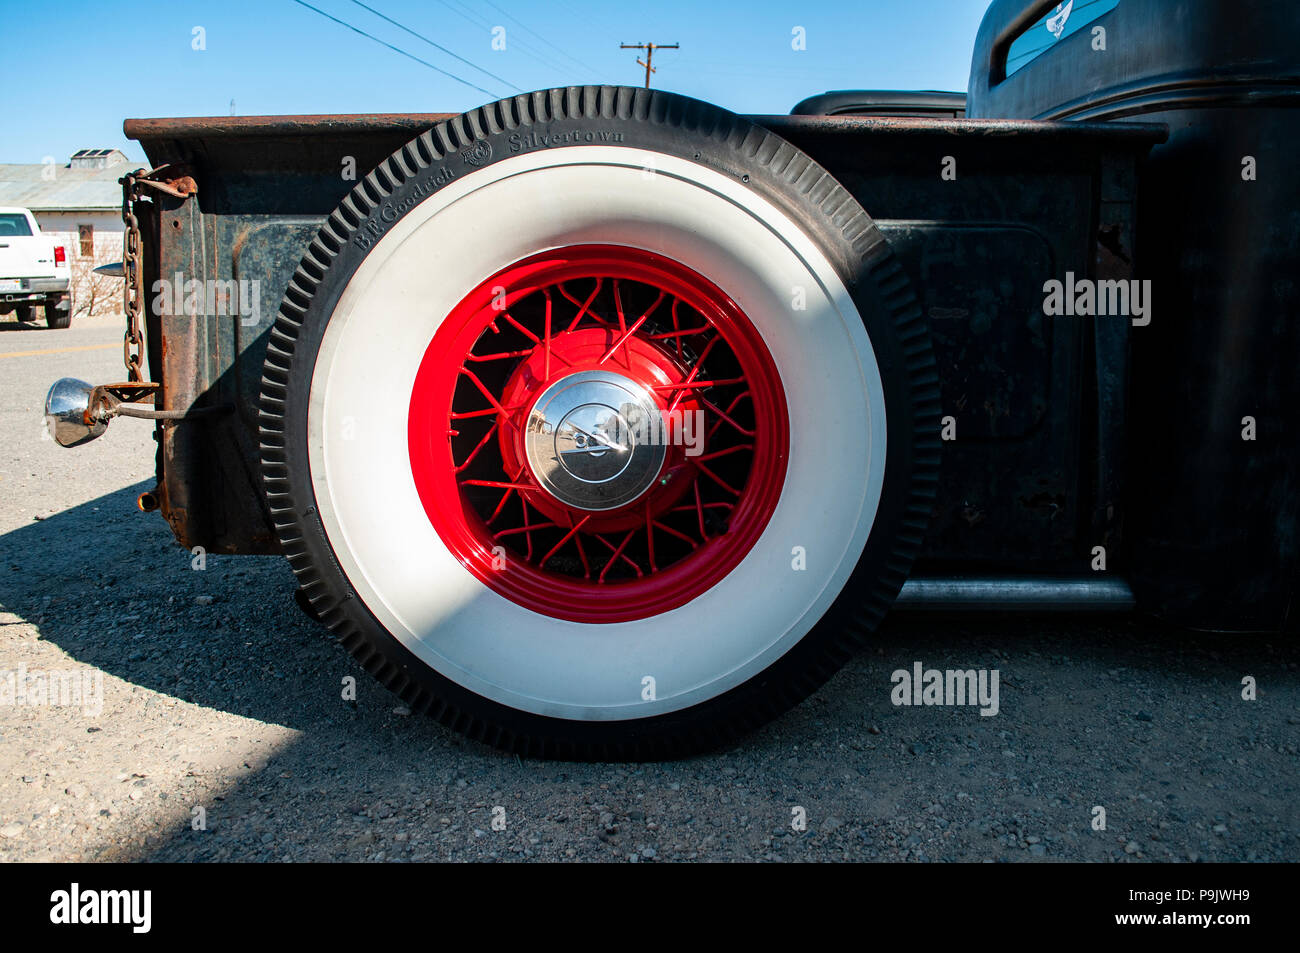 Wire Rims Stock Photos & Wire Rims Stock Images - Alamy